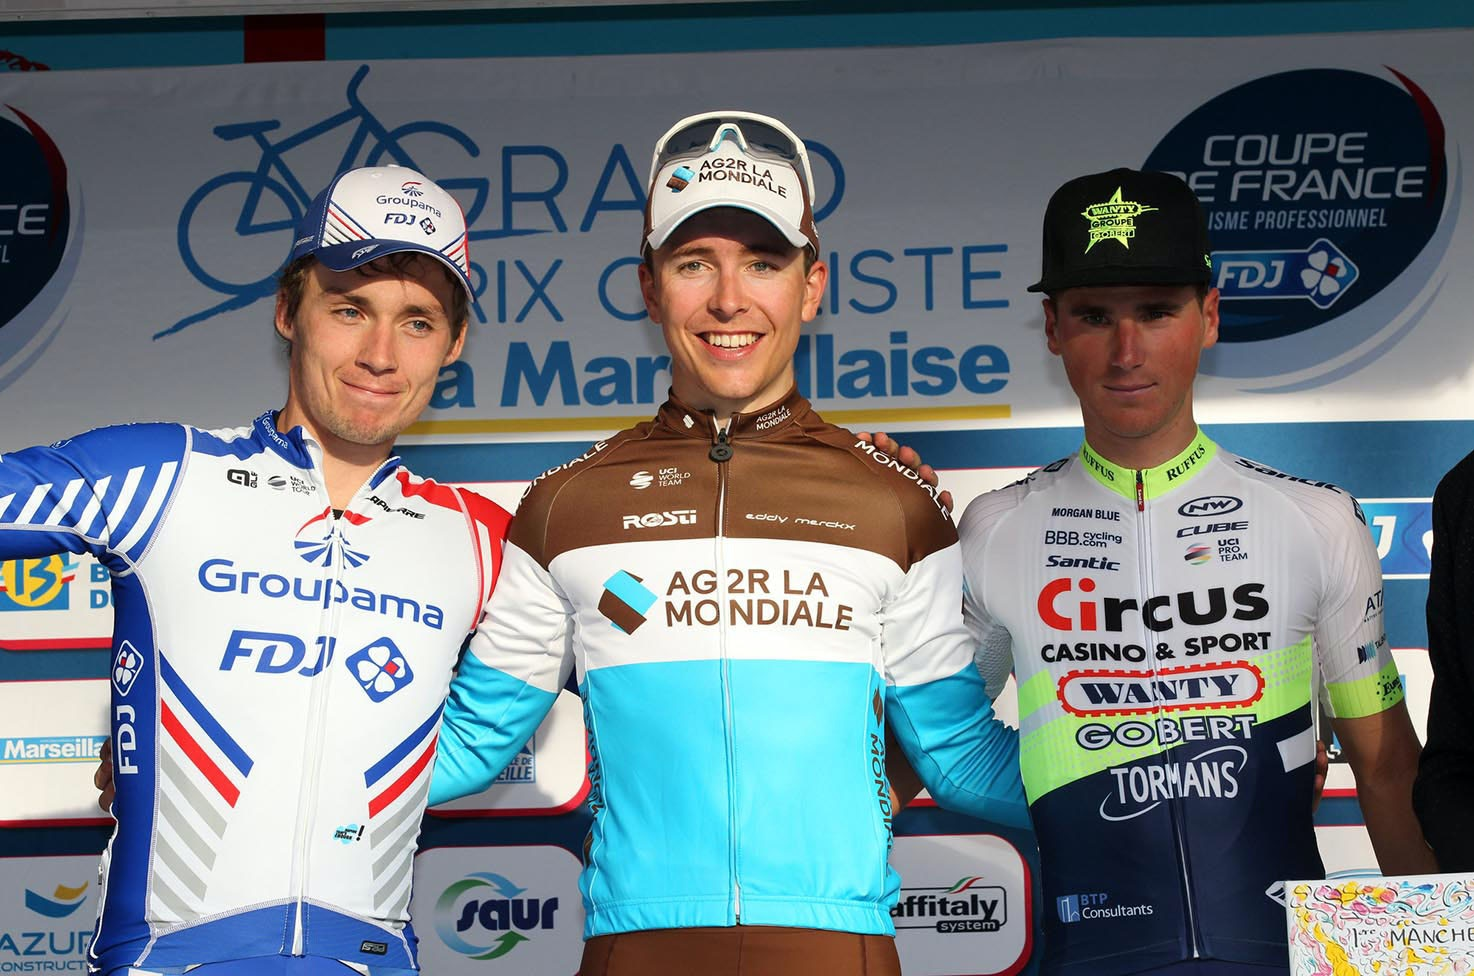 Northwave - Road: A great victory at the European debut for Northwave